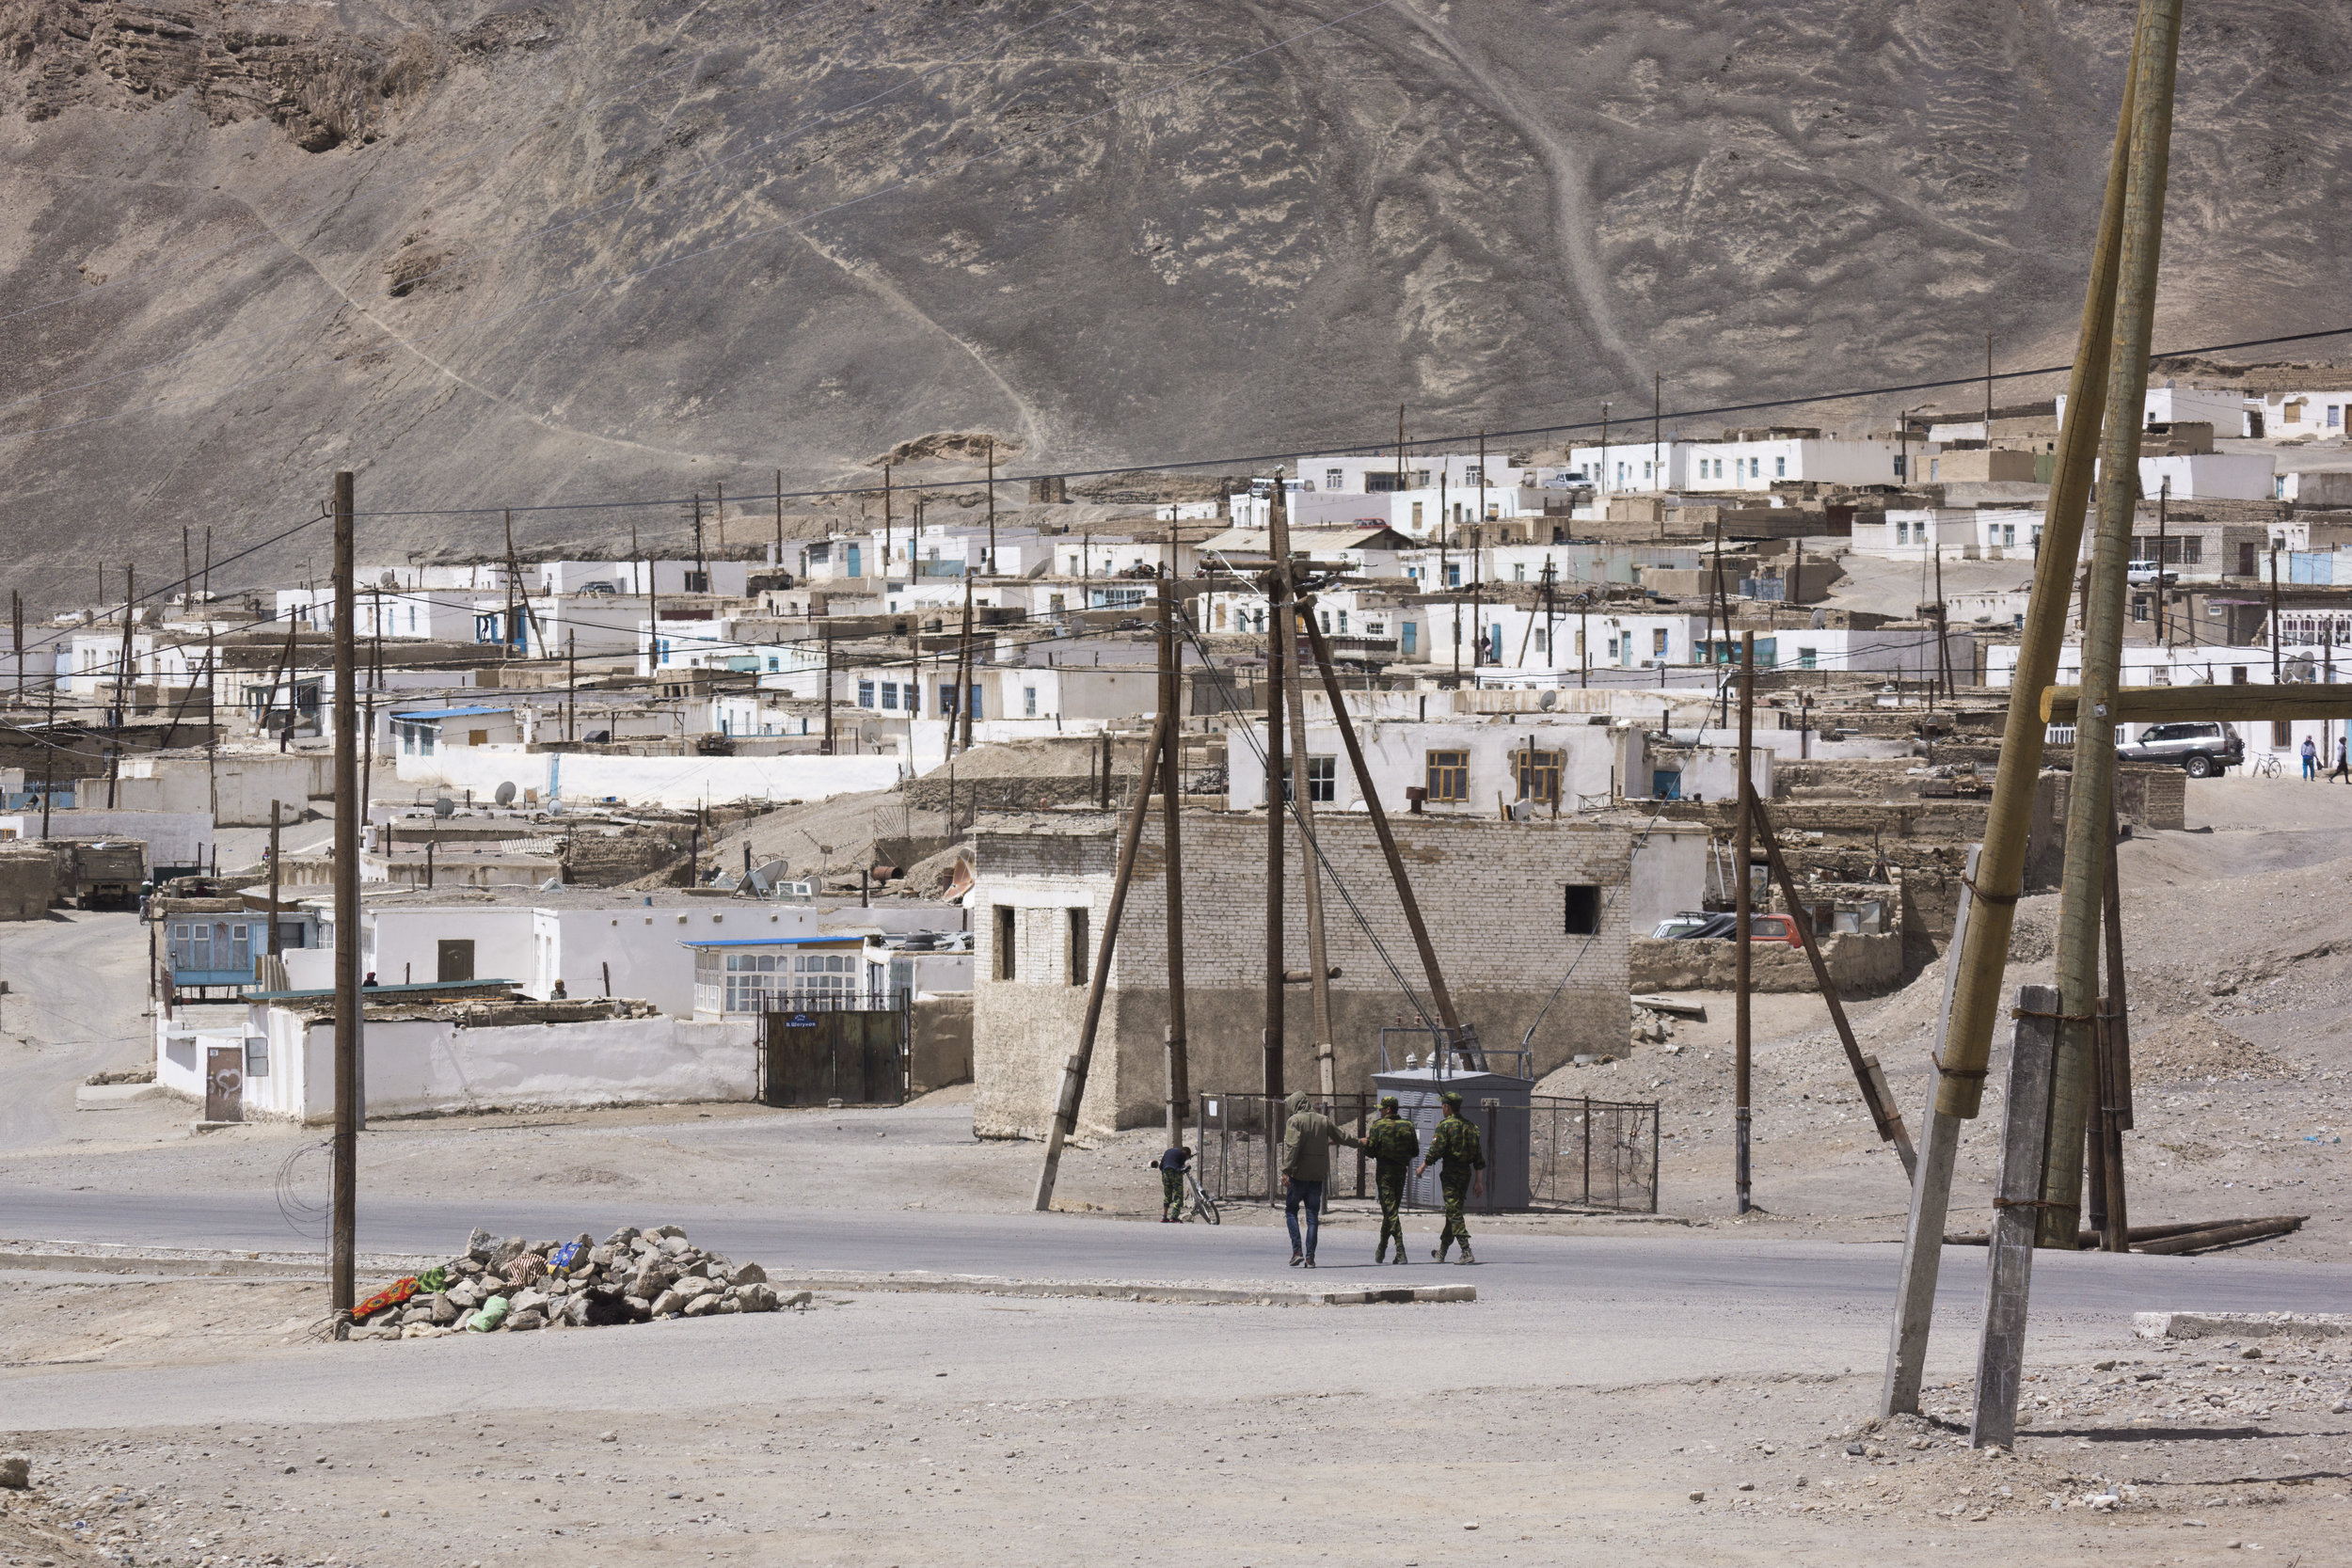 Soldiers wander in Murghab.